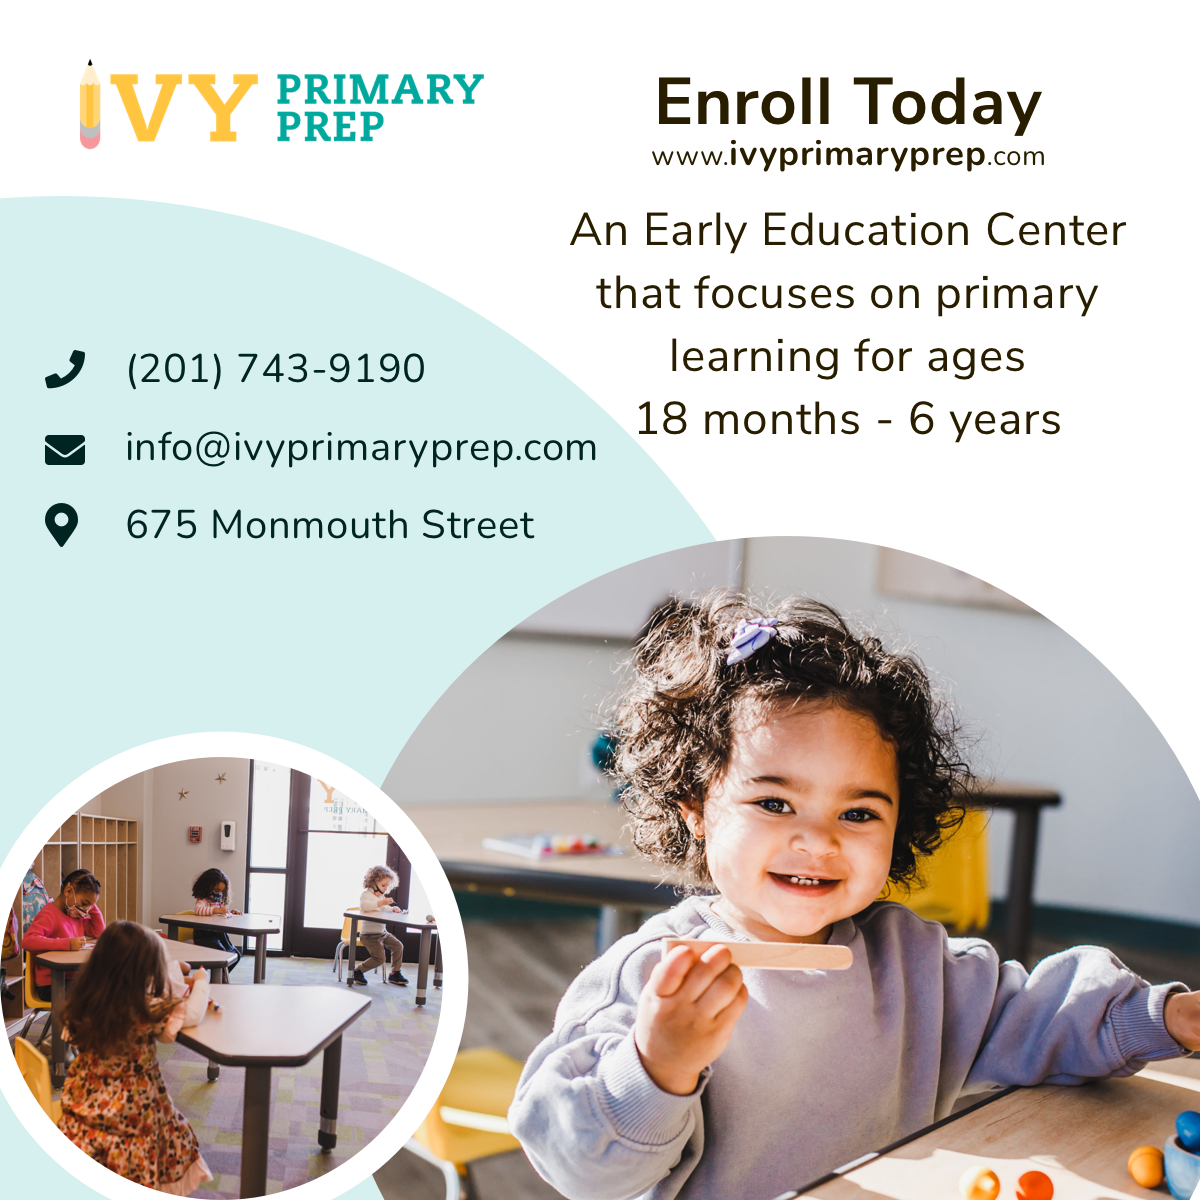 Ivy Primary Prep,        675 Monmouth St, Jersey City, NJ- (201) 743-9190